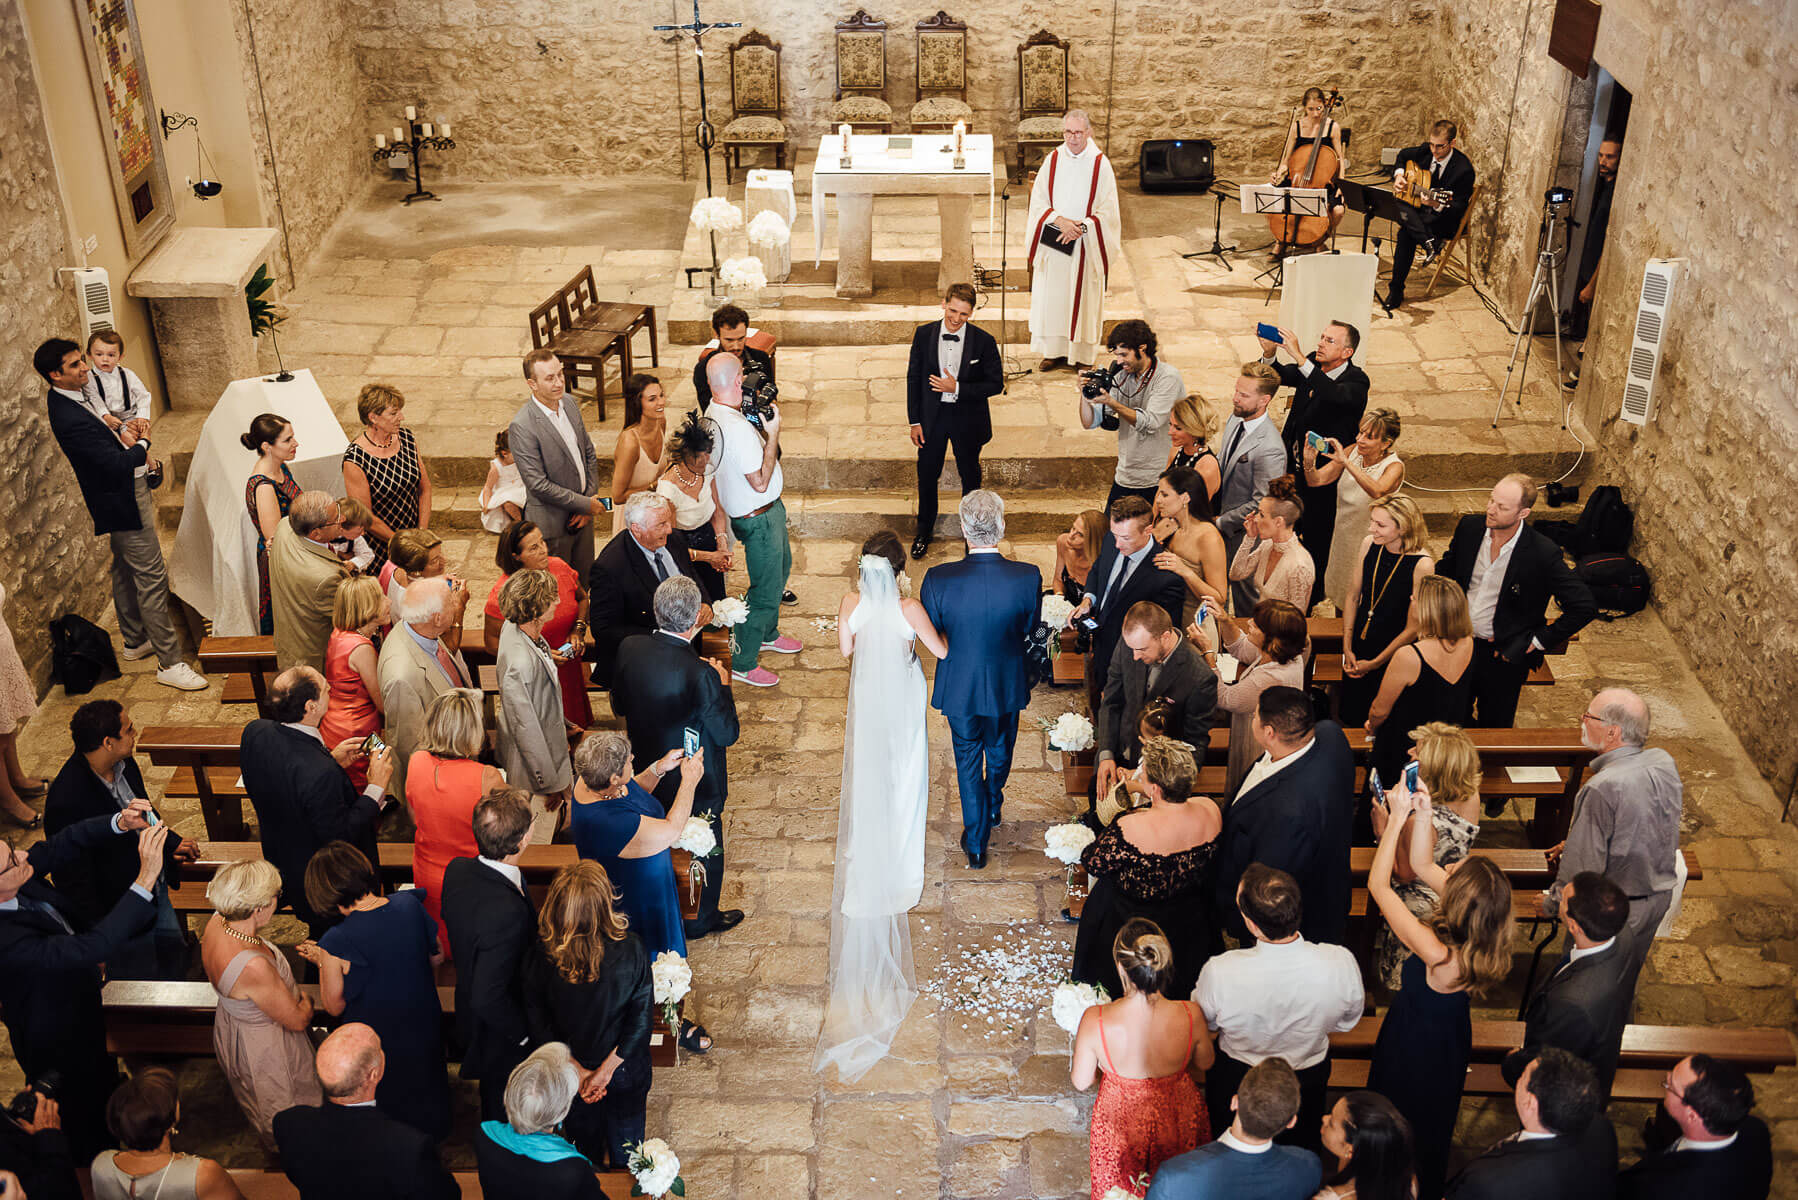 Boda Caroline & Tavish iglesia - Manel Tamayo Wedding Photographer